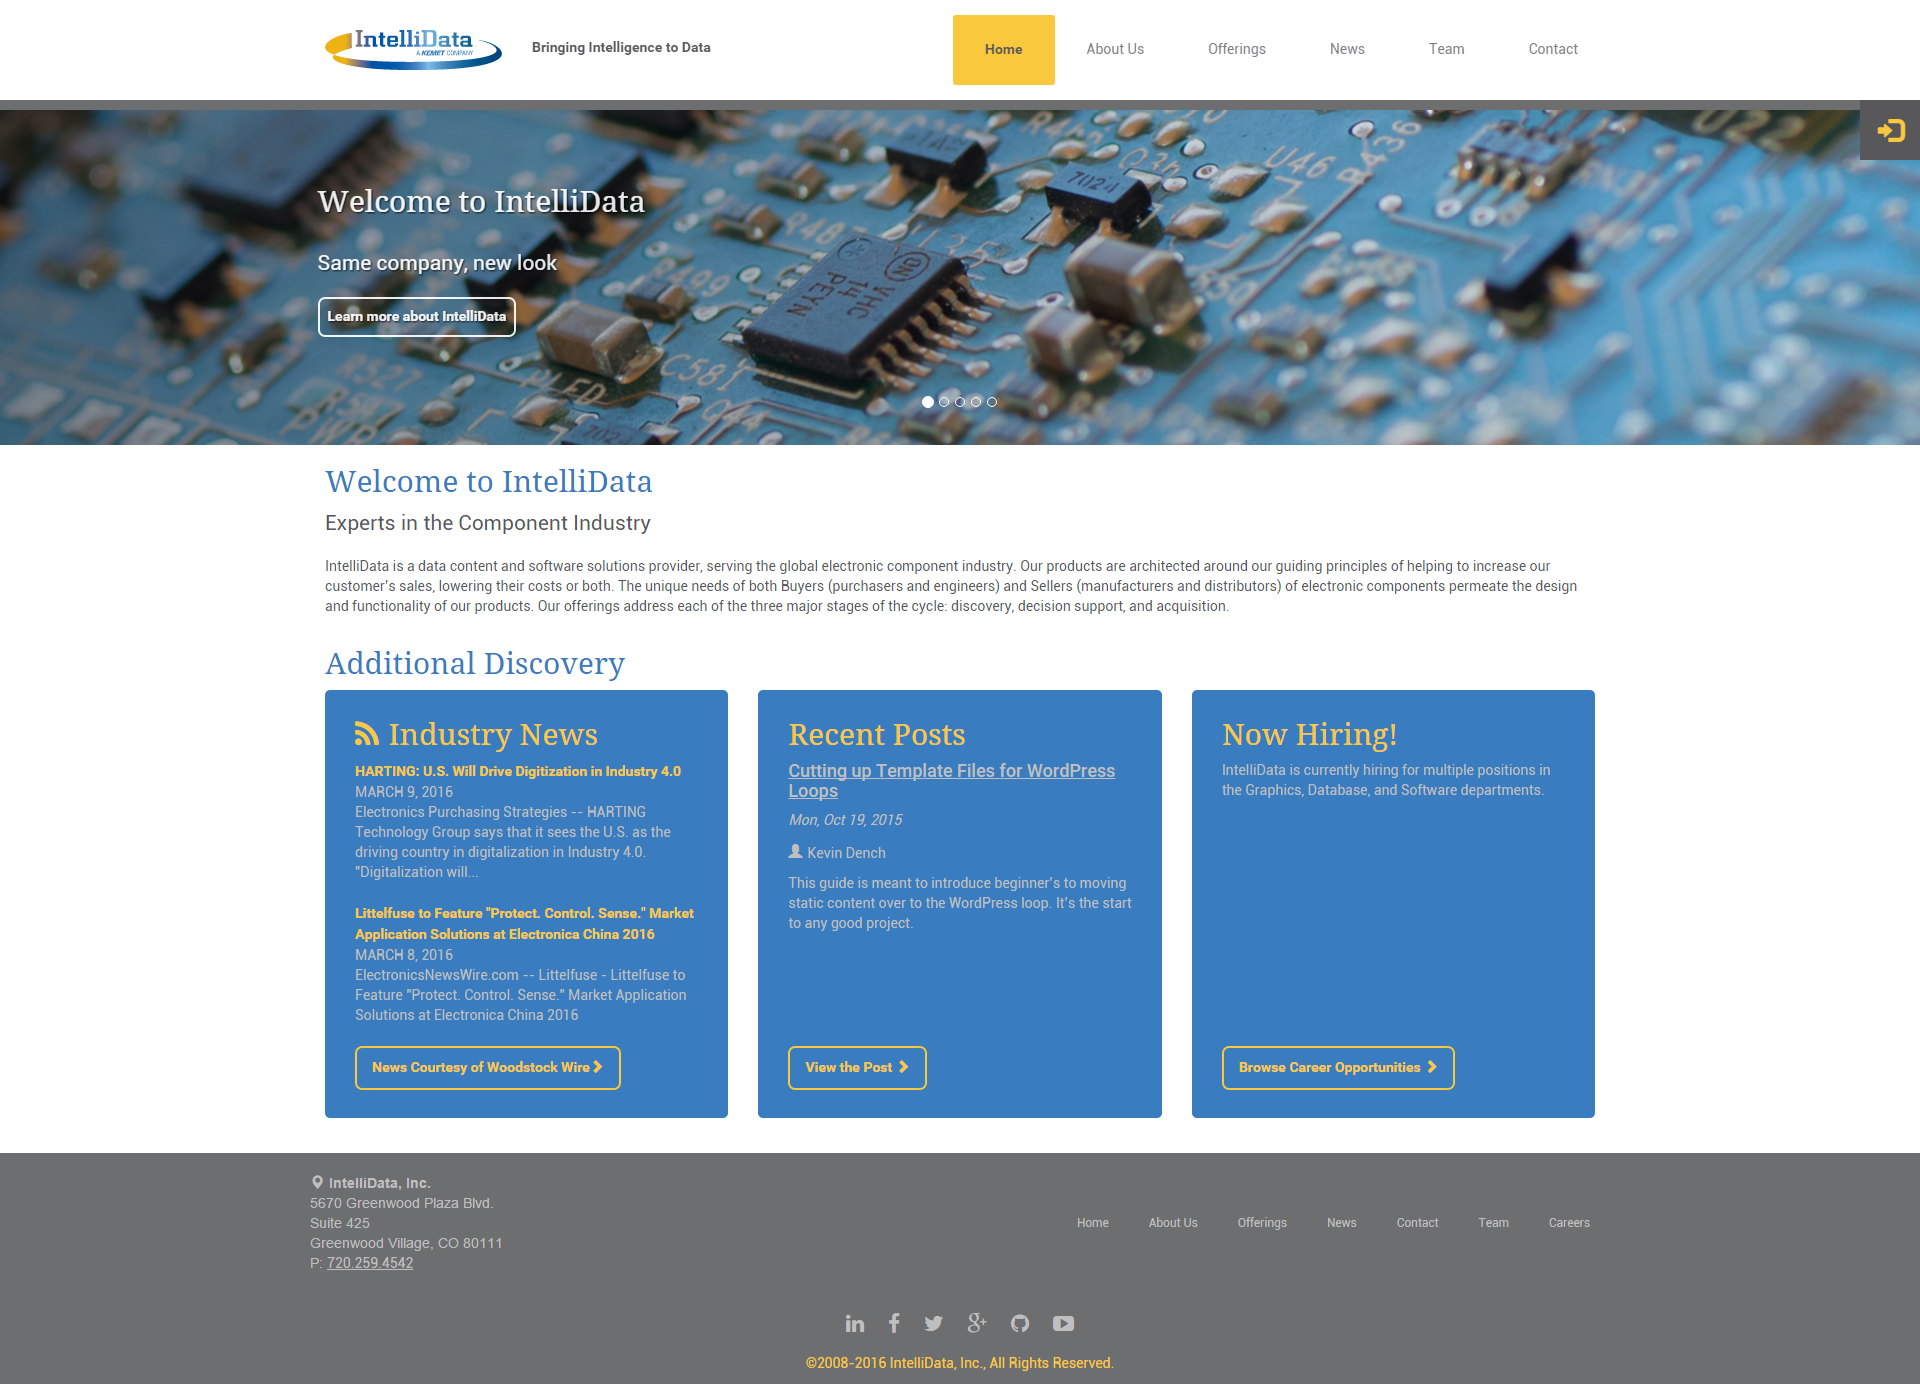 This is the landing page of IntelliData.net